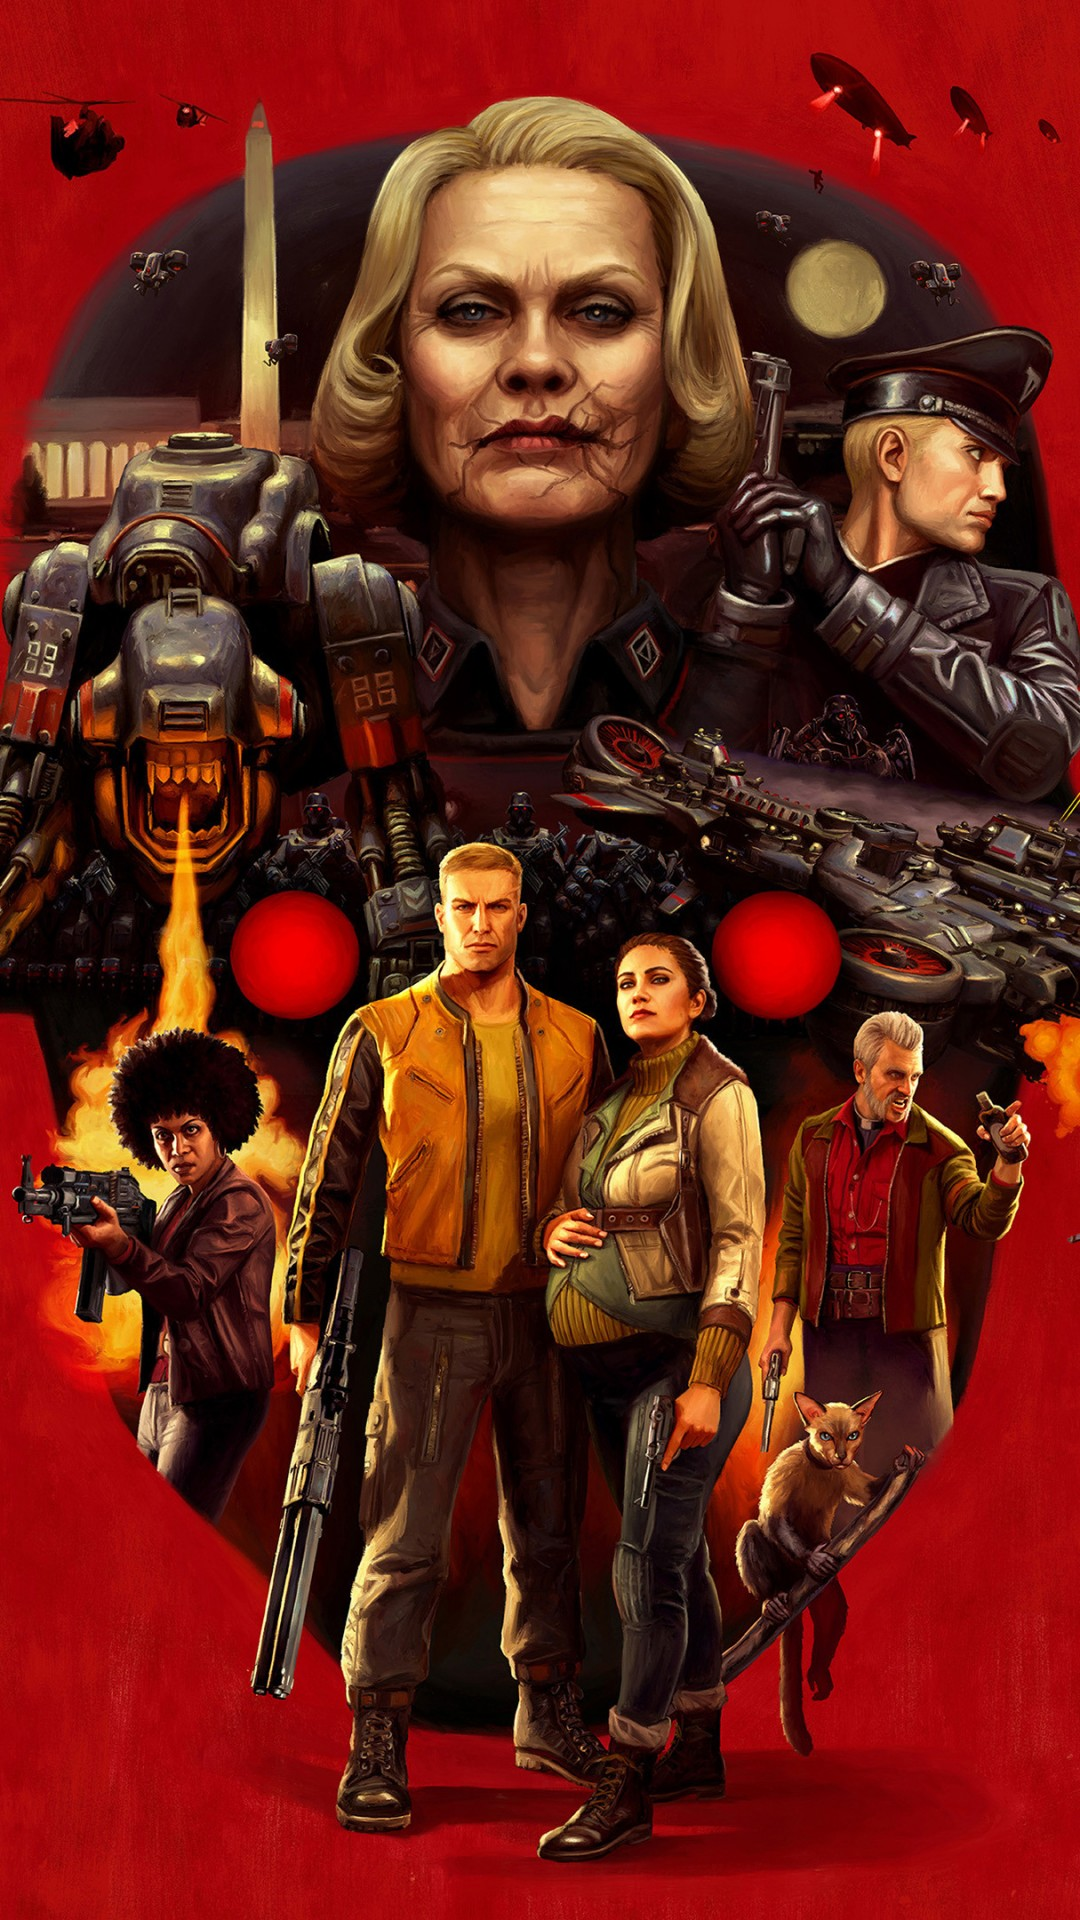 Iron Man 2 Hd Wallpapers Wallpaper Wolfenstein 2 The New Colossus Poster 4k